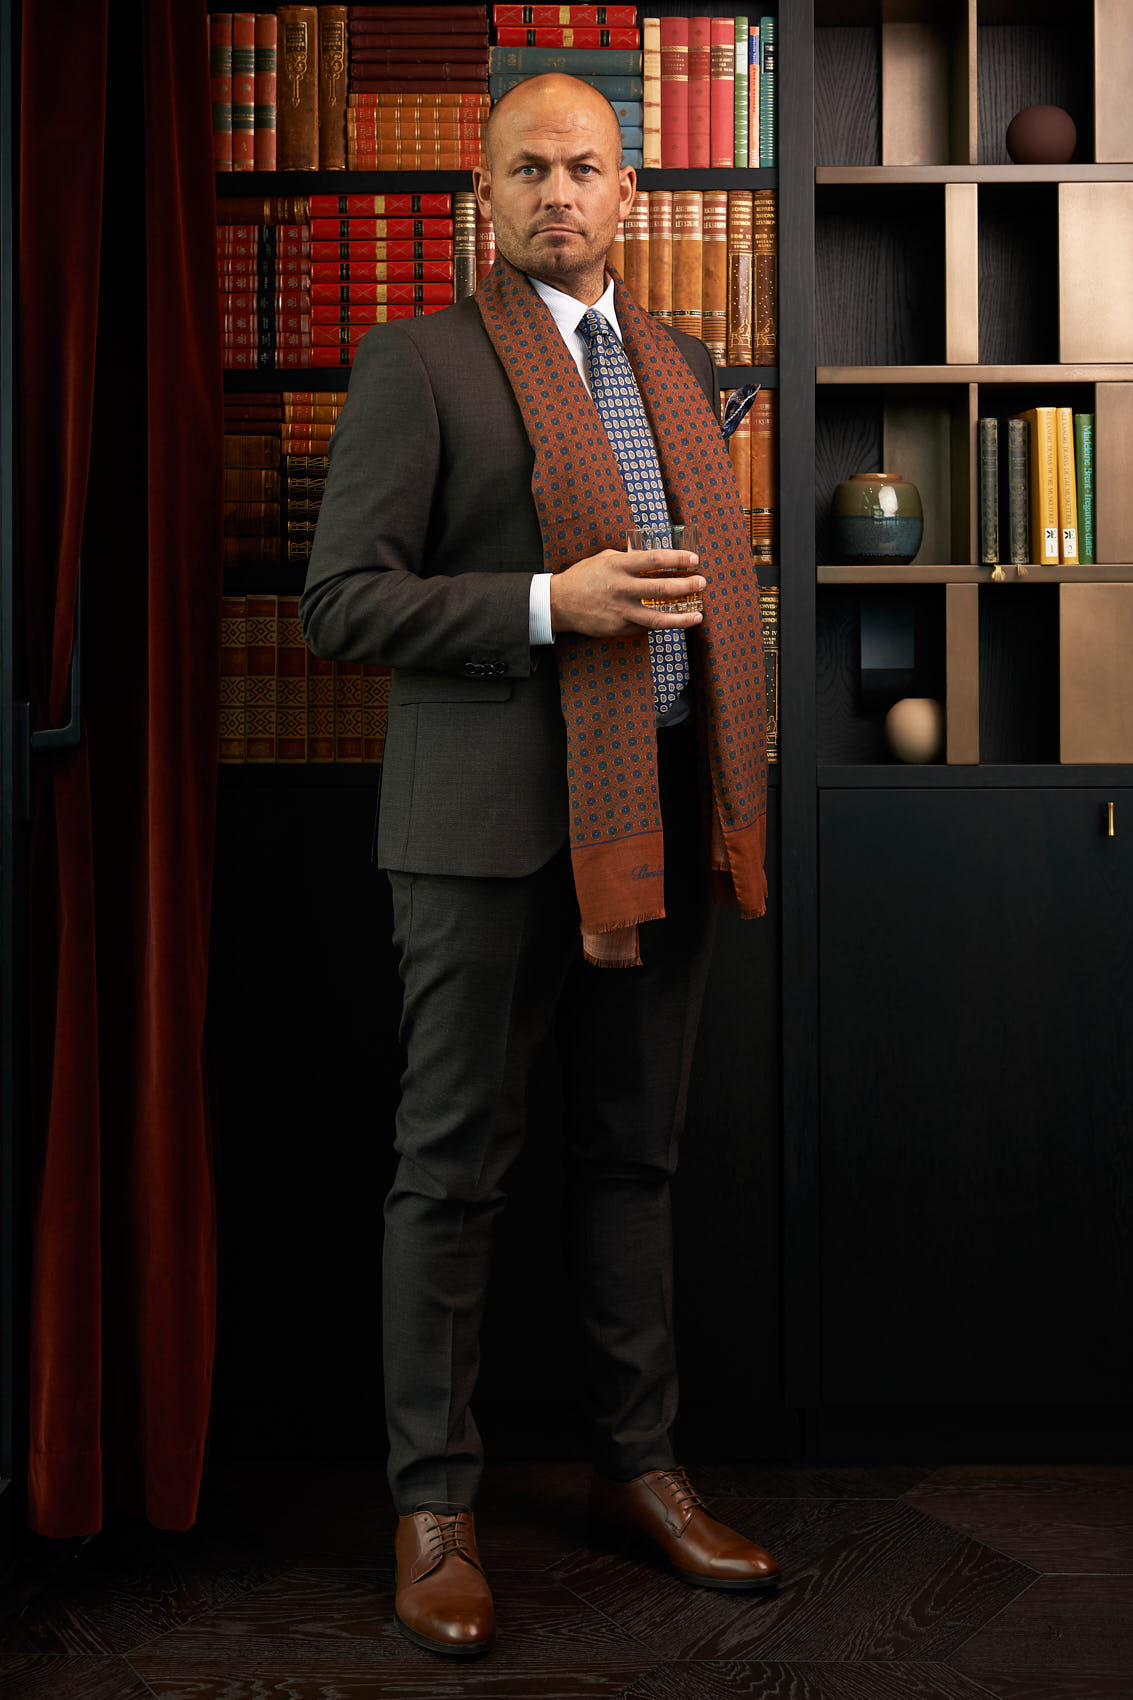 Gentlemen in brown suit holding a cognac glass with a book wall background for Høyer photo by Marcel Tiedje